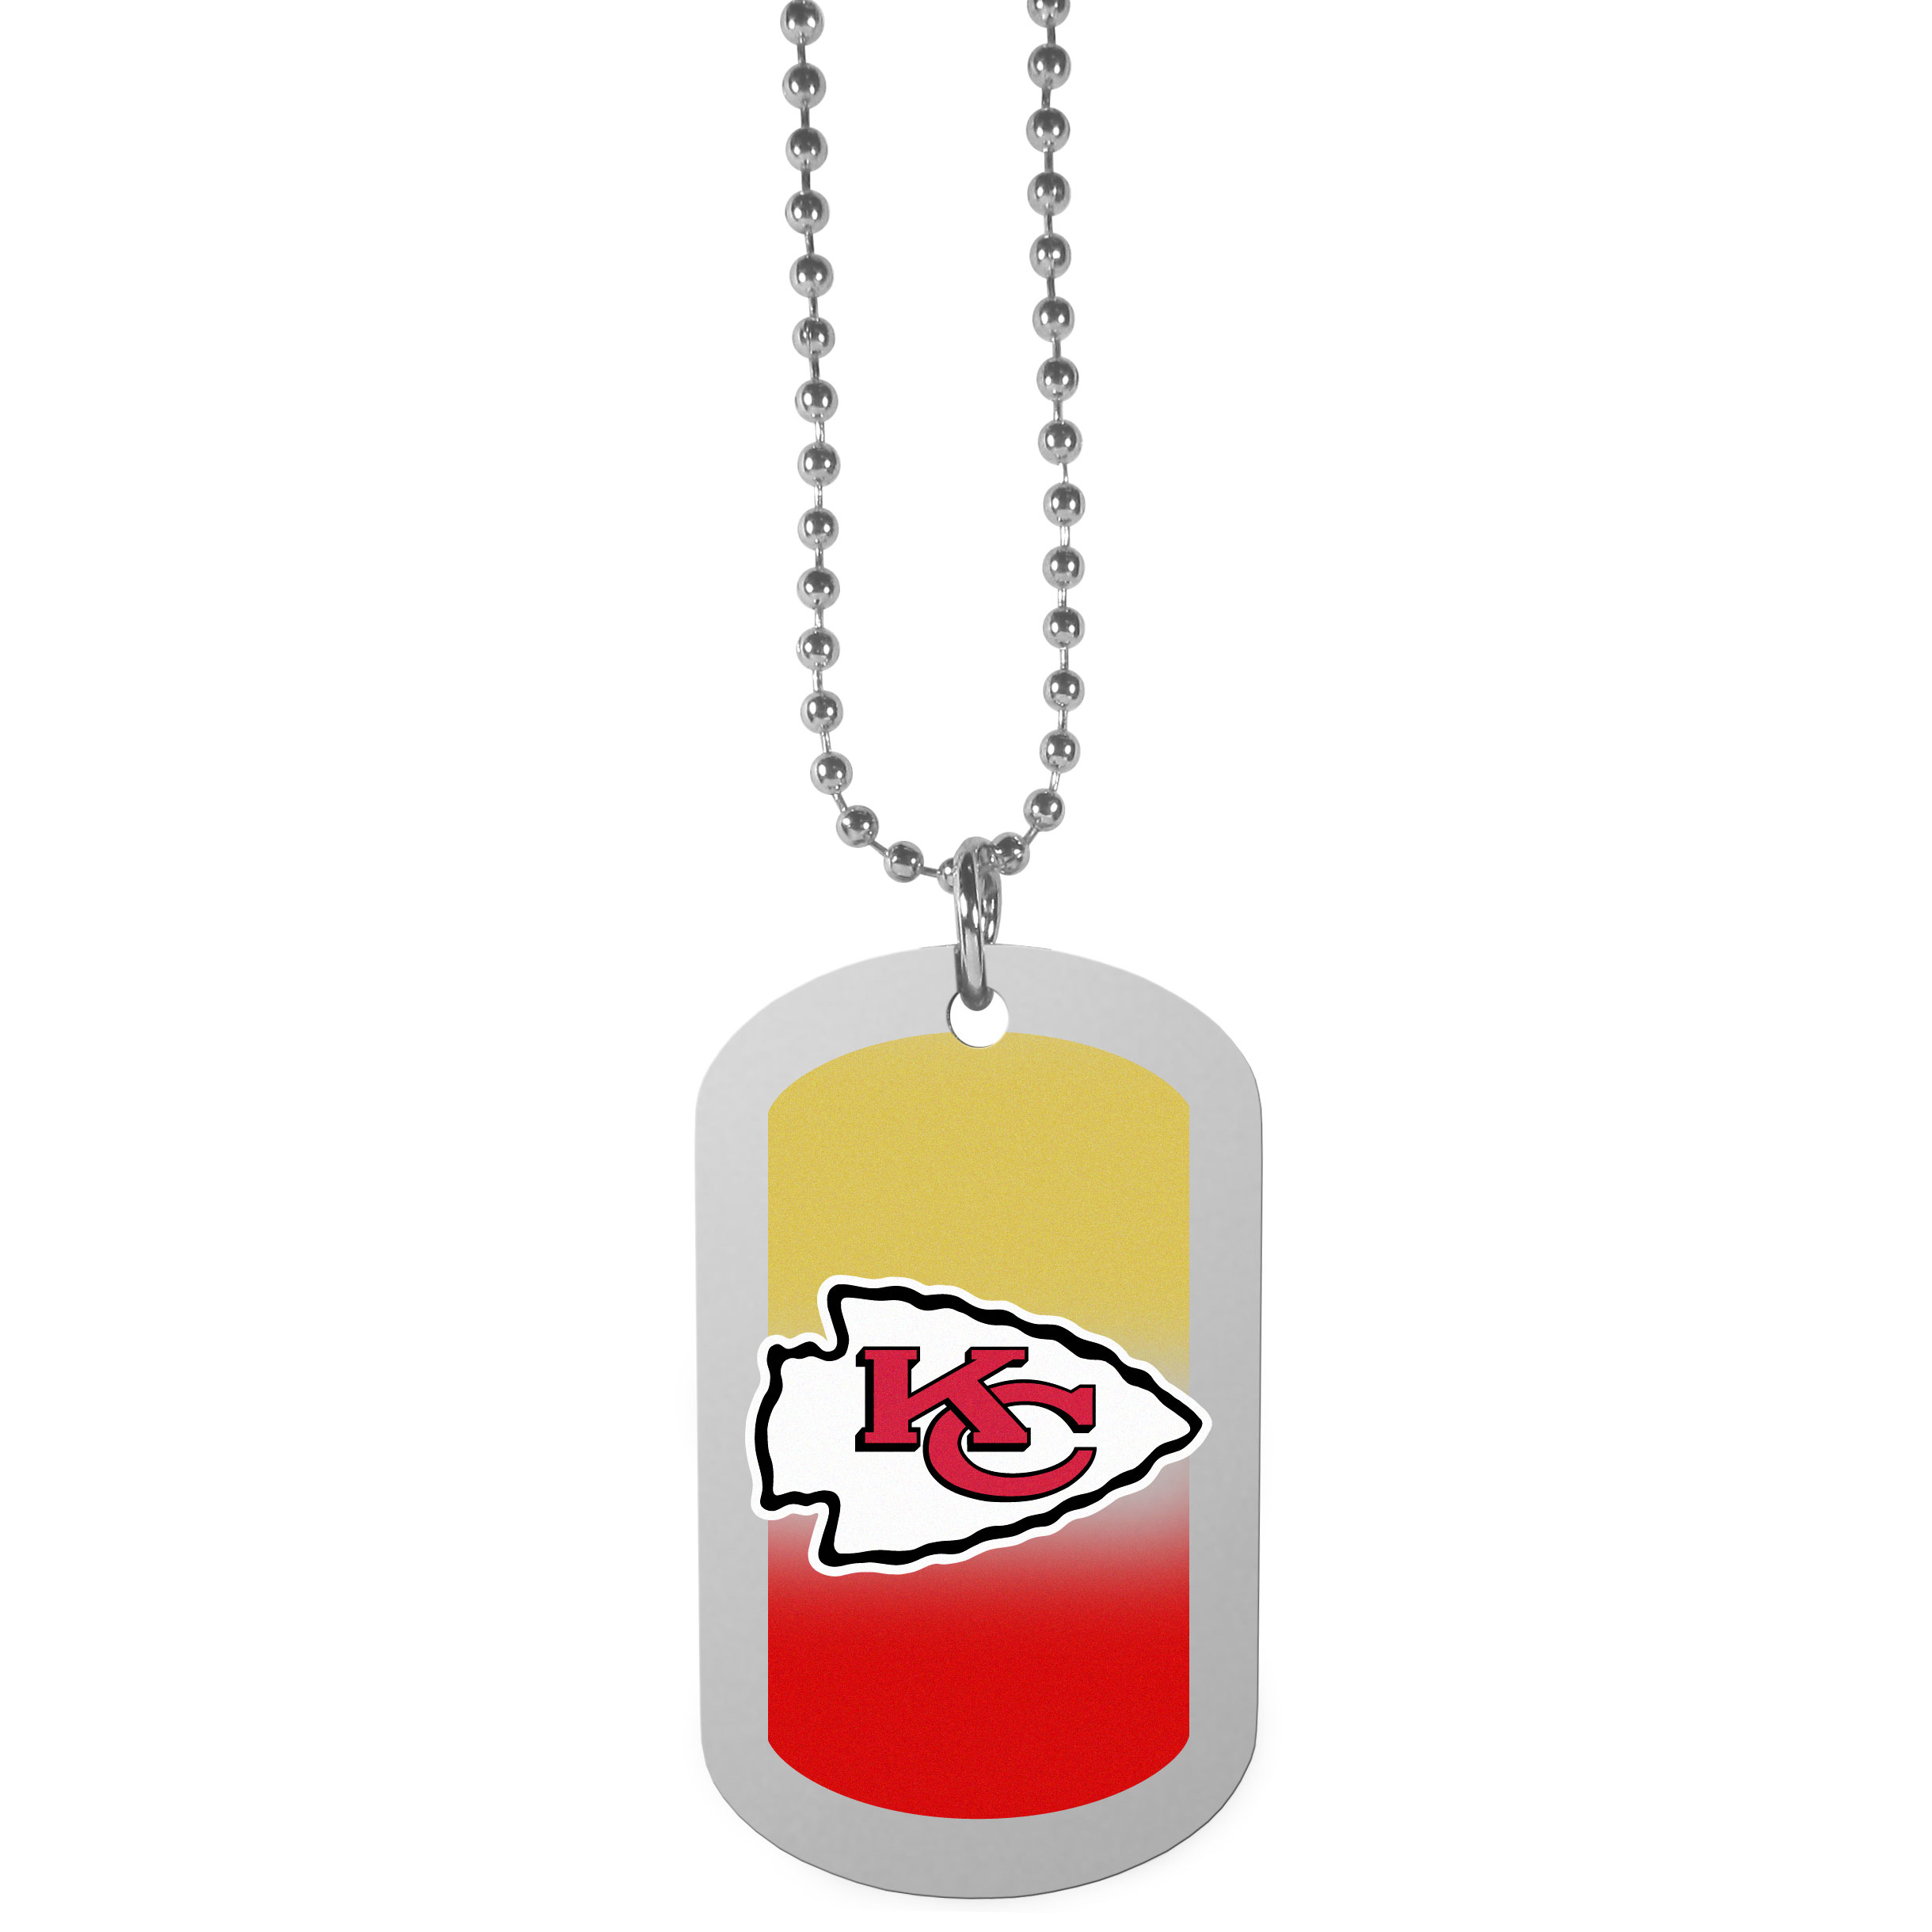 Kansas City Chiefs Team Tag Necklace - Dog tag necklaces are a fashion statement that is here to stay. The sporty version of the classic tag features a gradient print in team colors featuring a full color team logo over a high polish tag to create a bold and sporty look. The tag comes on a 26 inch ball chain with a ball and joint clasp. Any Kansas City Chiefs would be proud to wear this attractive fashion accessory.